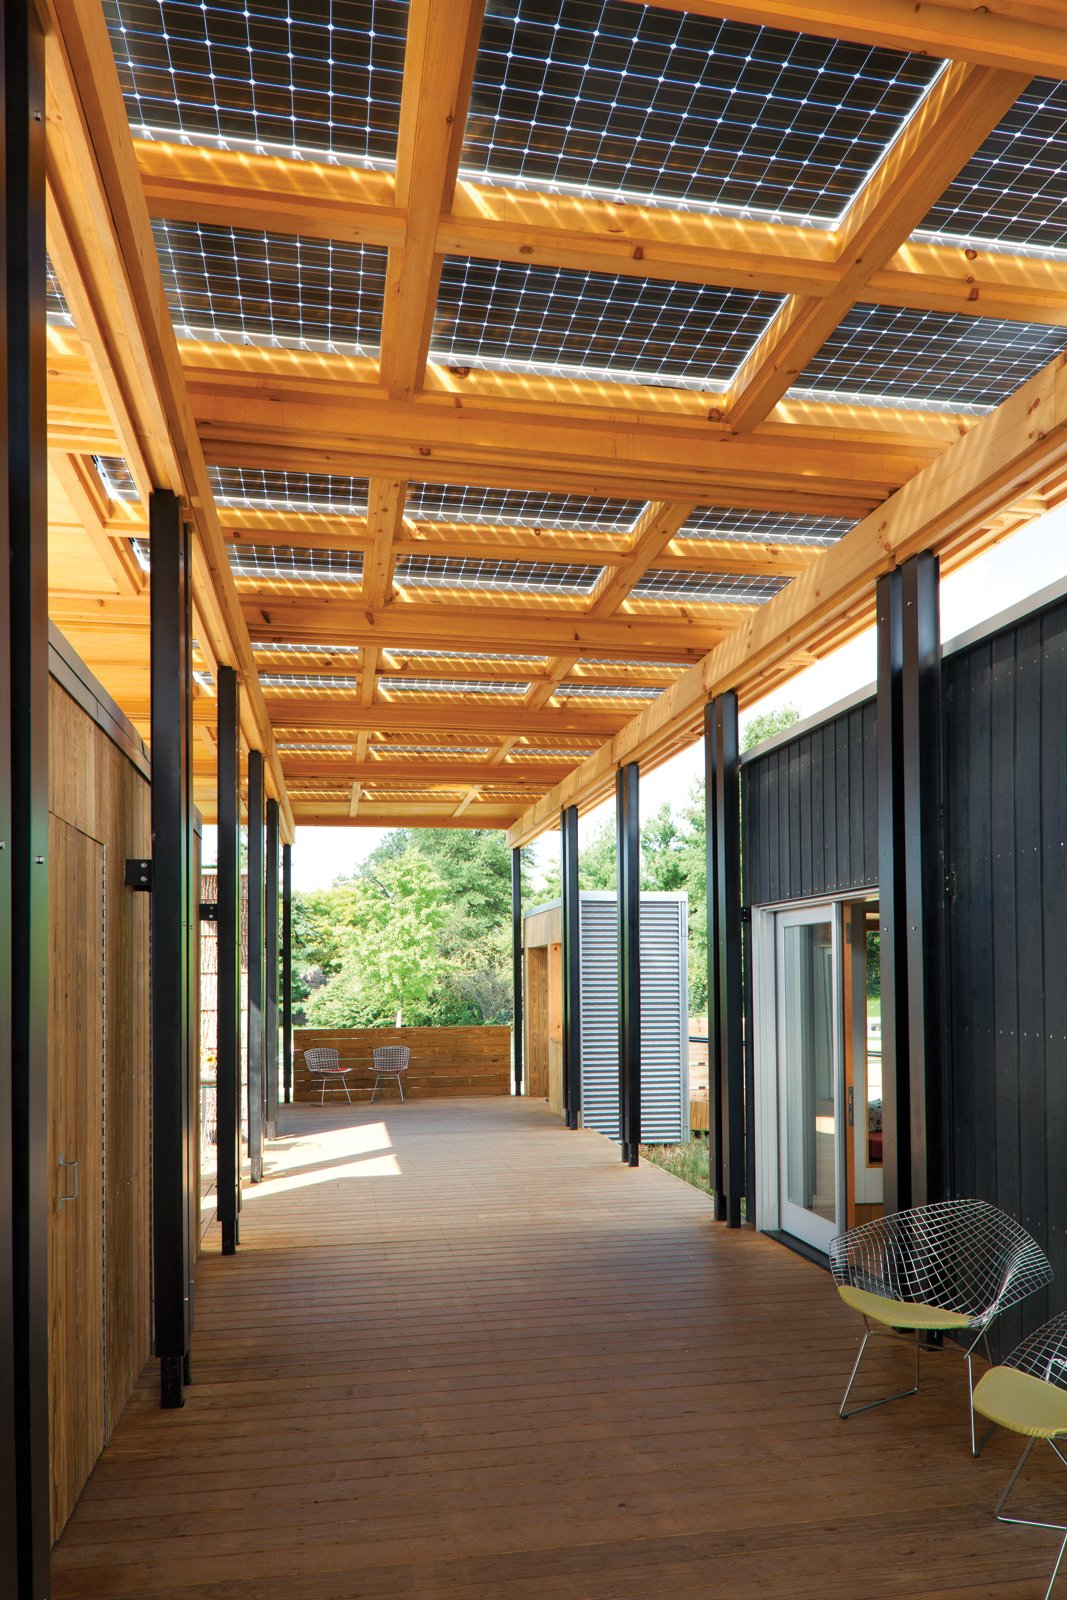 Porches are a beloved element of the Southern vernacular and lifestyle, traditionally serving as an extension of the indoors—a shady place to gather, socialize, or share a meal. So when the students of Appalachian State University in Boone, North Carolina, entered the Solar Decathlon, a biennial energy-efficient residential design competition, the iconic space figured prominently in their concept. Here, a canopy of bifacial solar panels covers the porch and provides energy for the home. Tagged: Outdoor and Wood Patio, Porch, Deck.  12 Porches Across America by Diana Budds from About Face